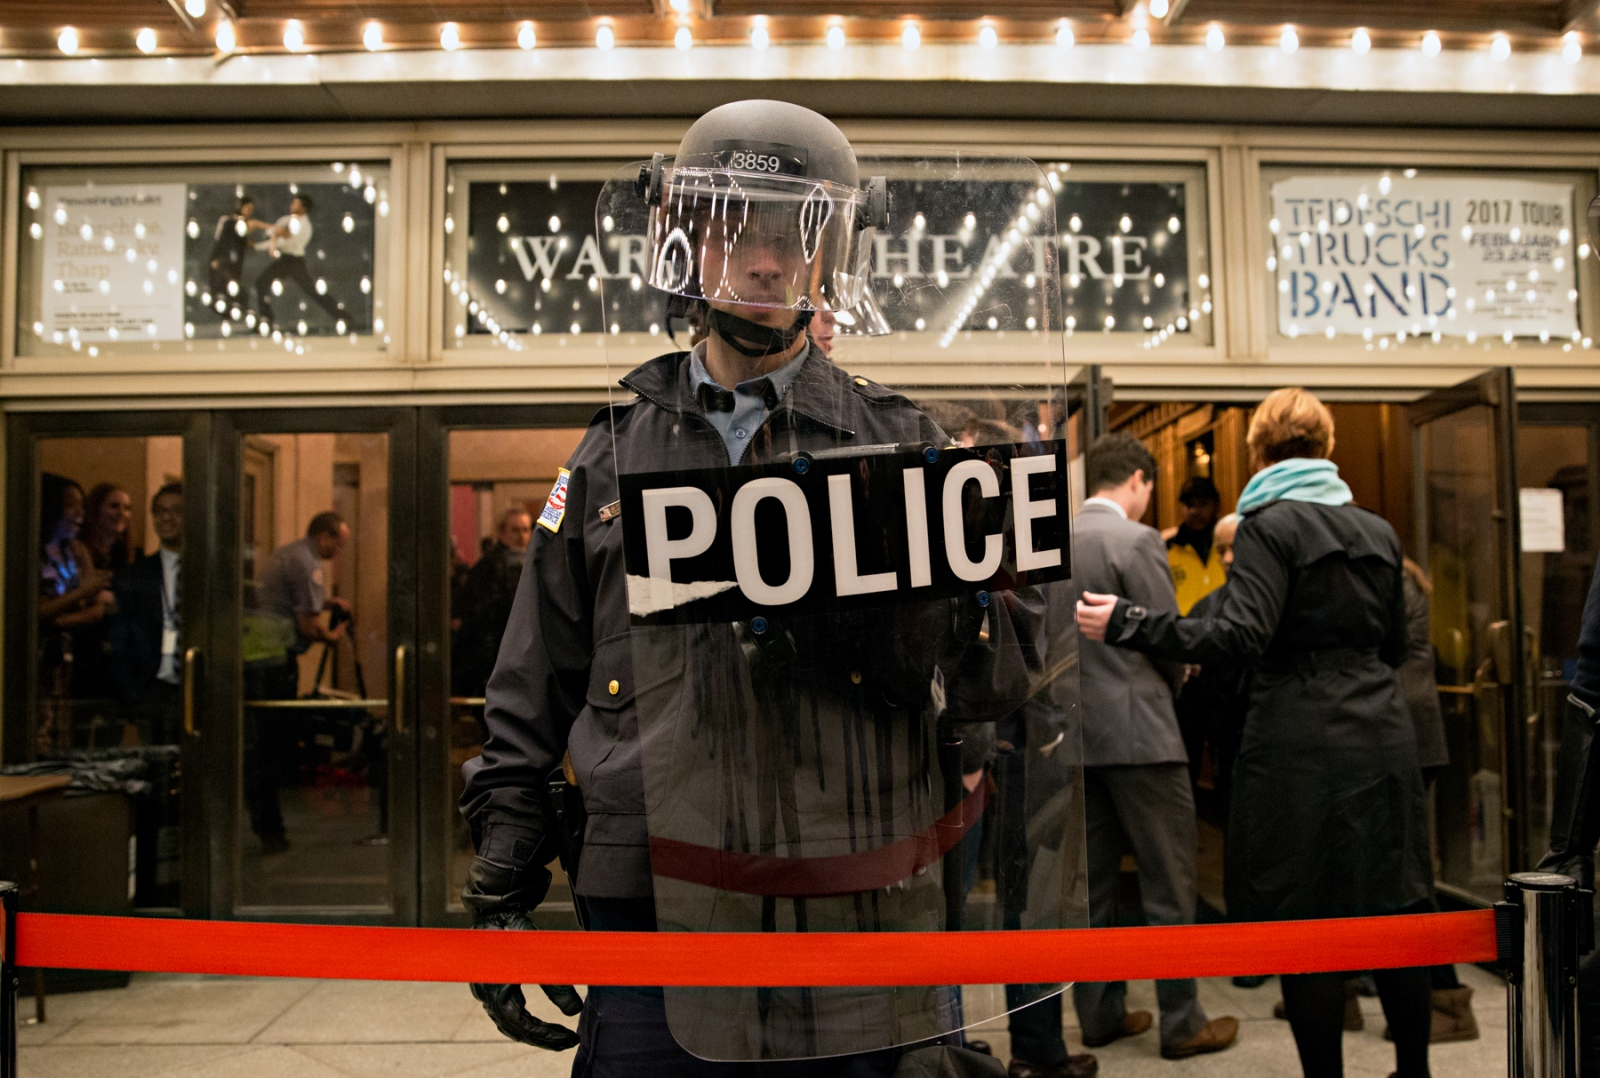 January 19, 2017 - Washington, DC, United States: A Washington, DC police officer in riot gear protects the entrance of an inauguration night event to prevent protestors from entering the event. There were many such events where high profile celebrities attended and mingled with each other. In this particular one, protestors were waiting the arrival of Sean Hannity and were prepared to throw eggs at him if they saw him and had the opportunity.